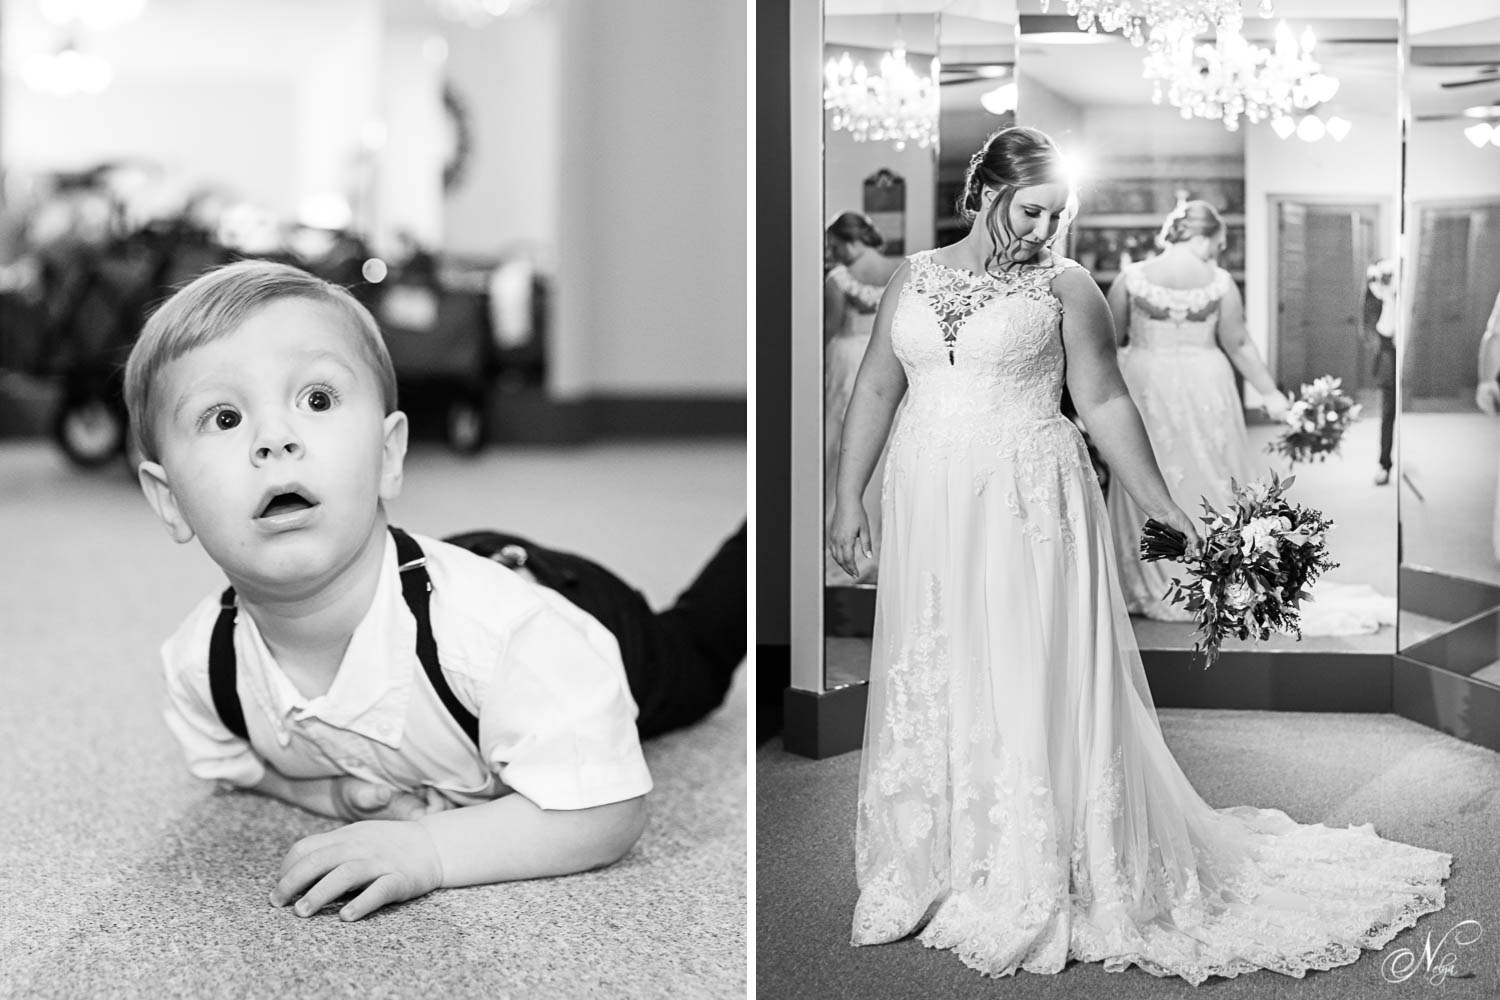 small child laying on floor looking up at bride. And bride standing in front of mirror on her wedding day in Georgia